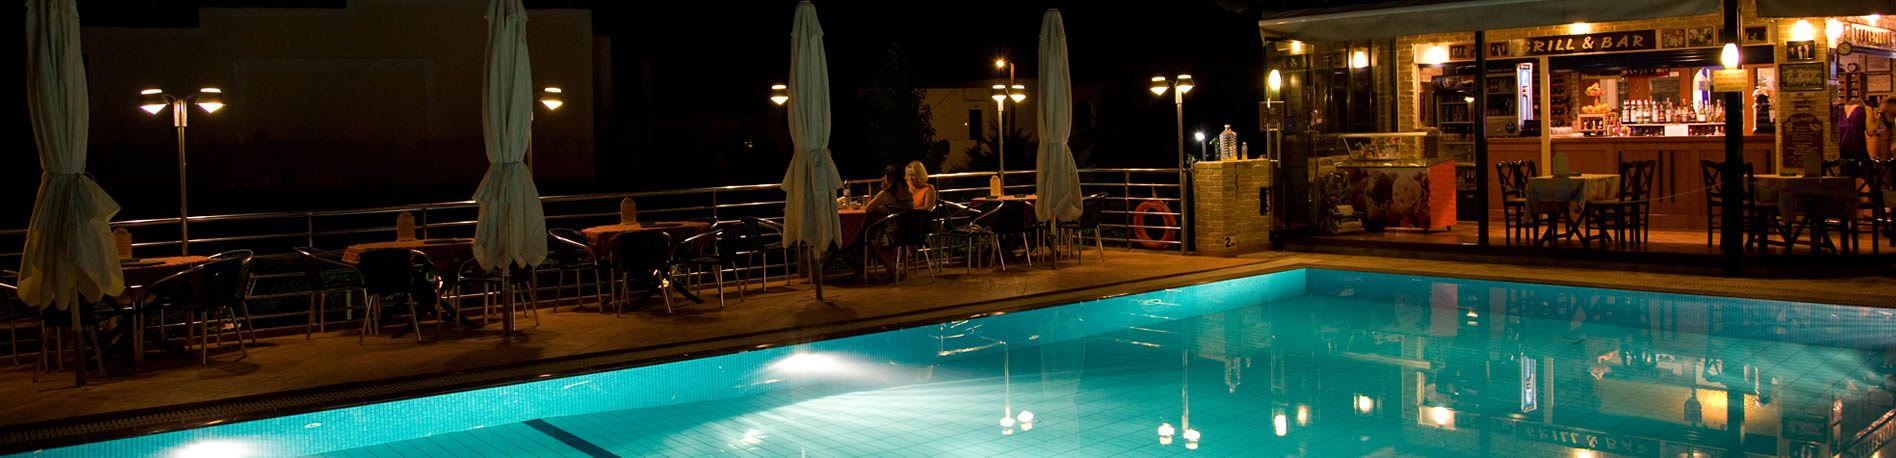 pool_night_hotel